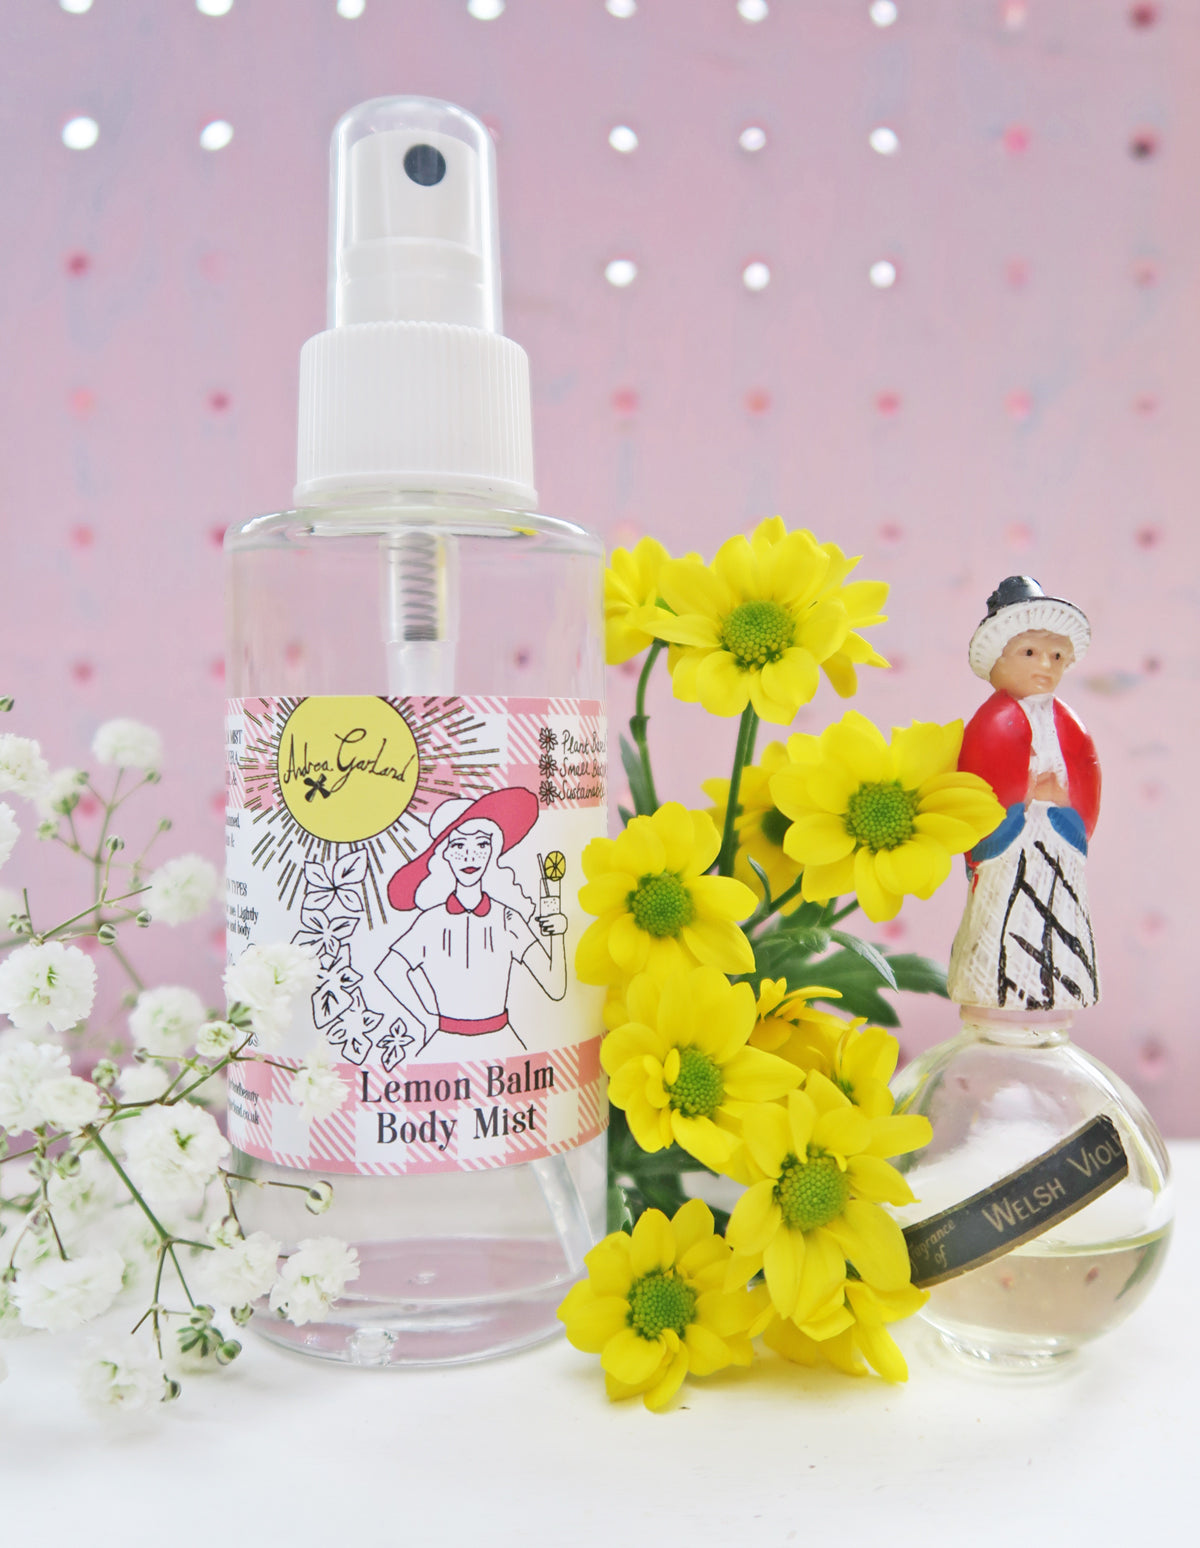 Lemon Balm Body Mist - Andrea Garland